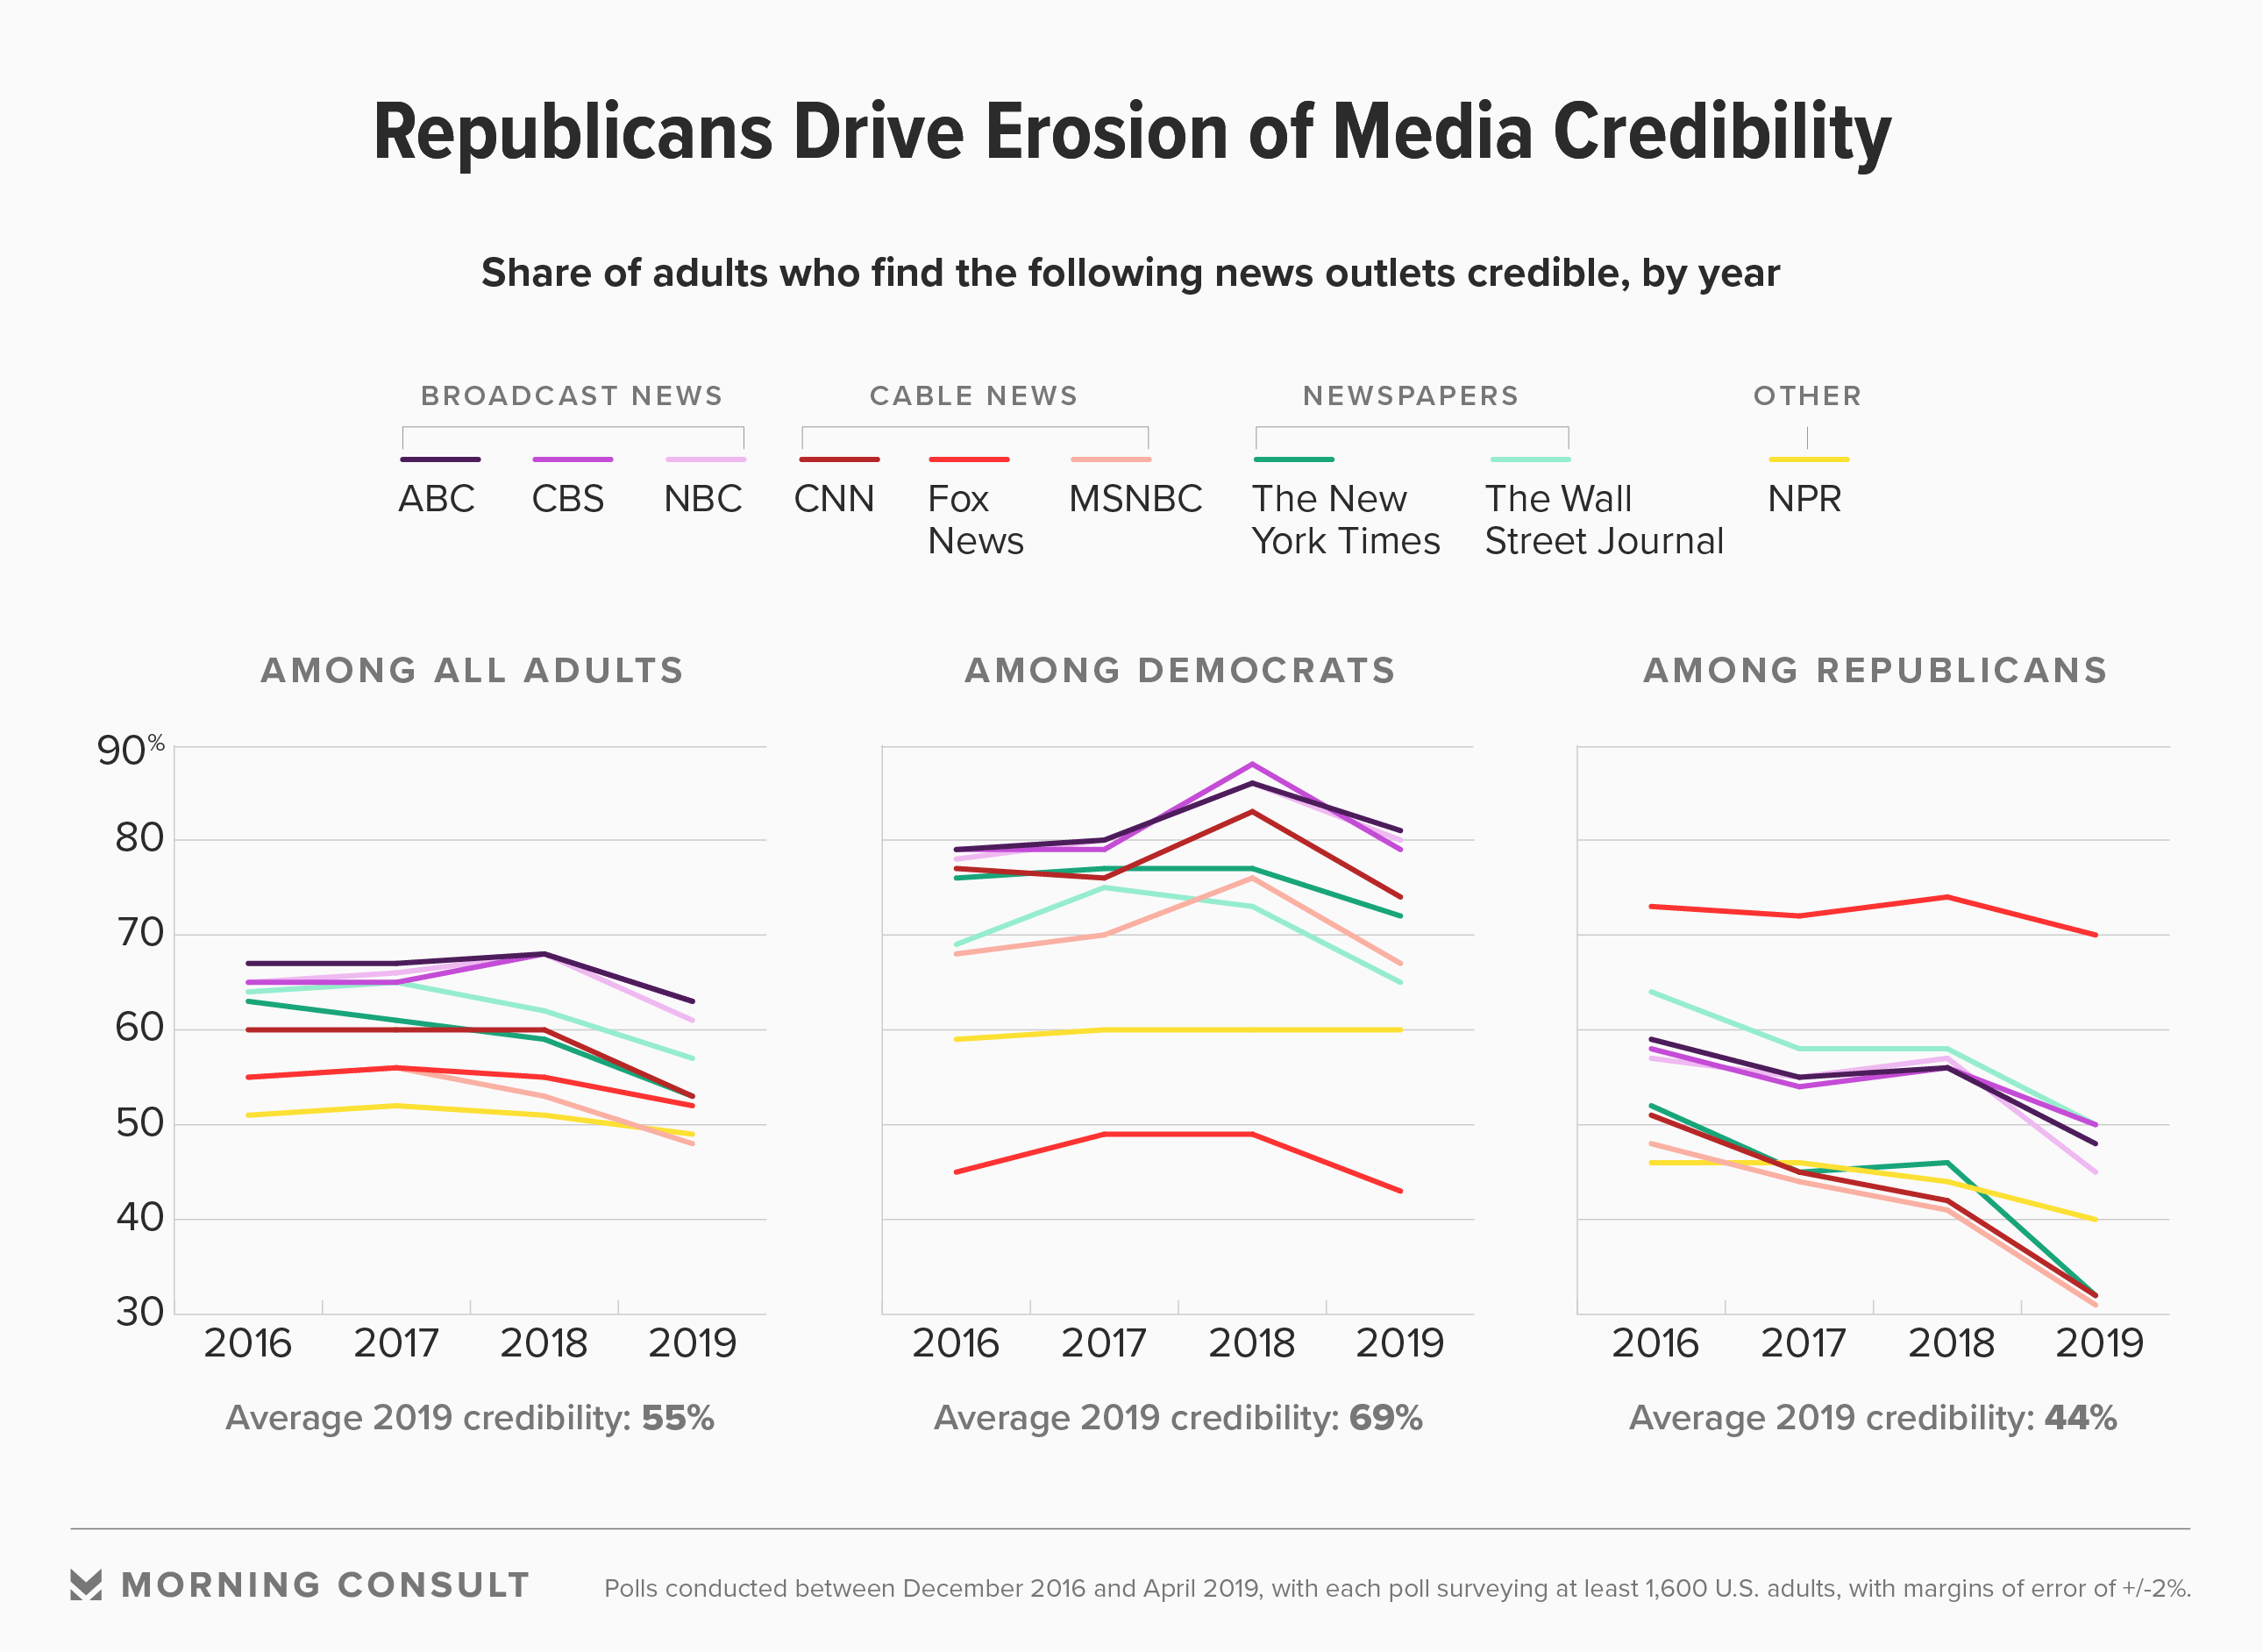 Media Credibility Perceptions Are Down, Due to Republicans